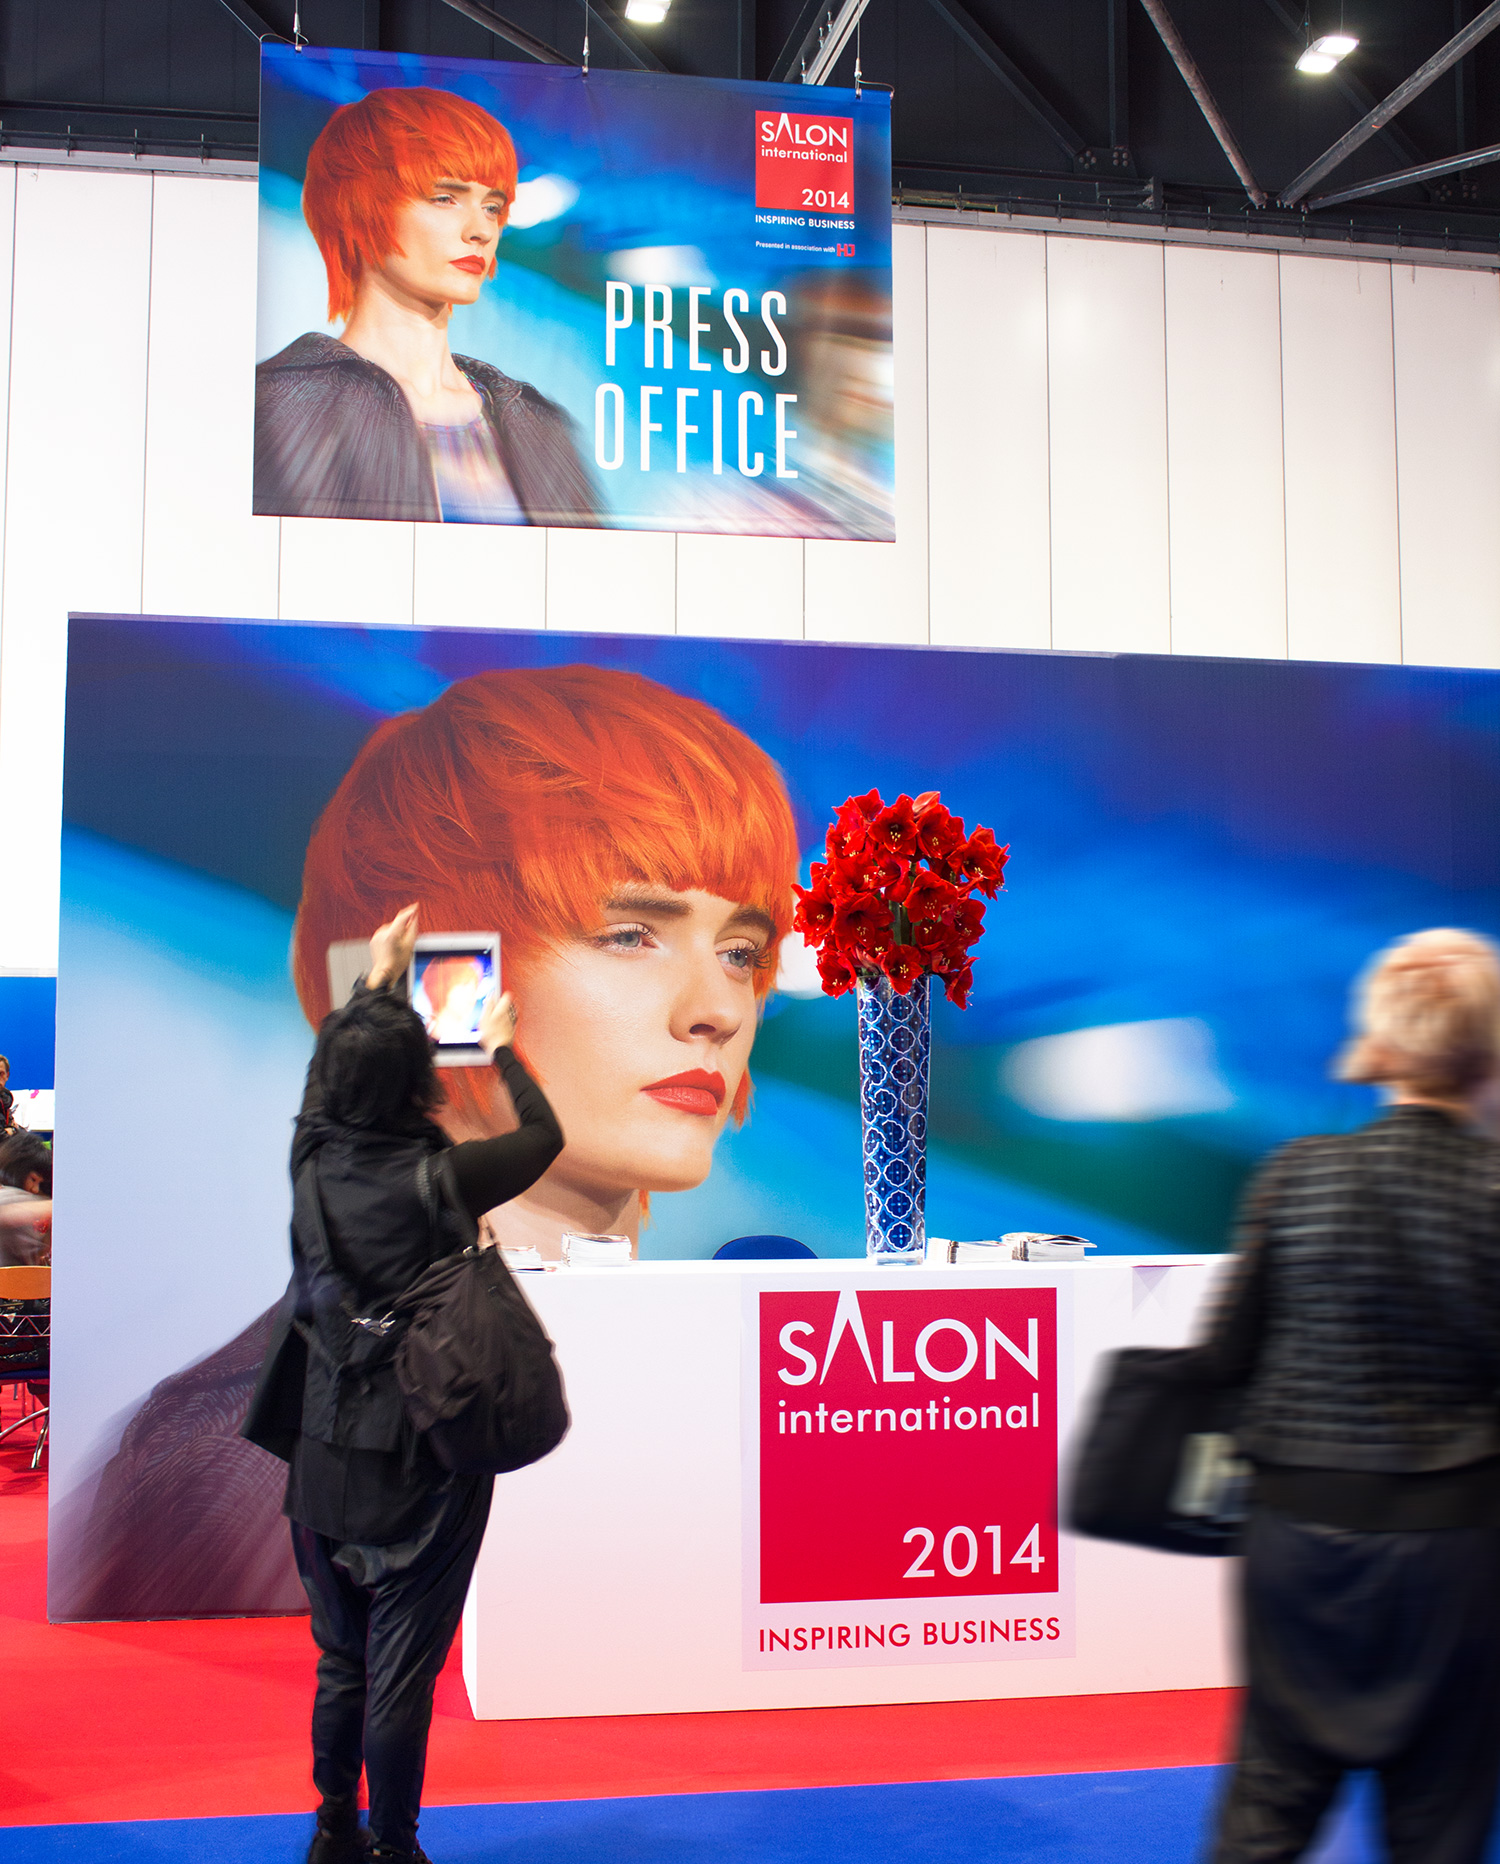 Salon-2014_Press-office_crop_1500.jpg